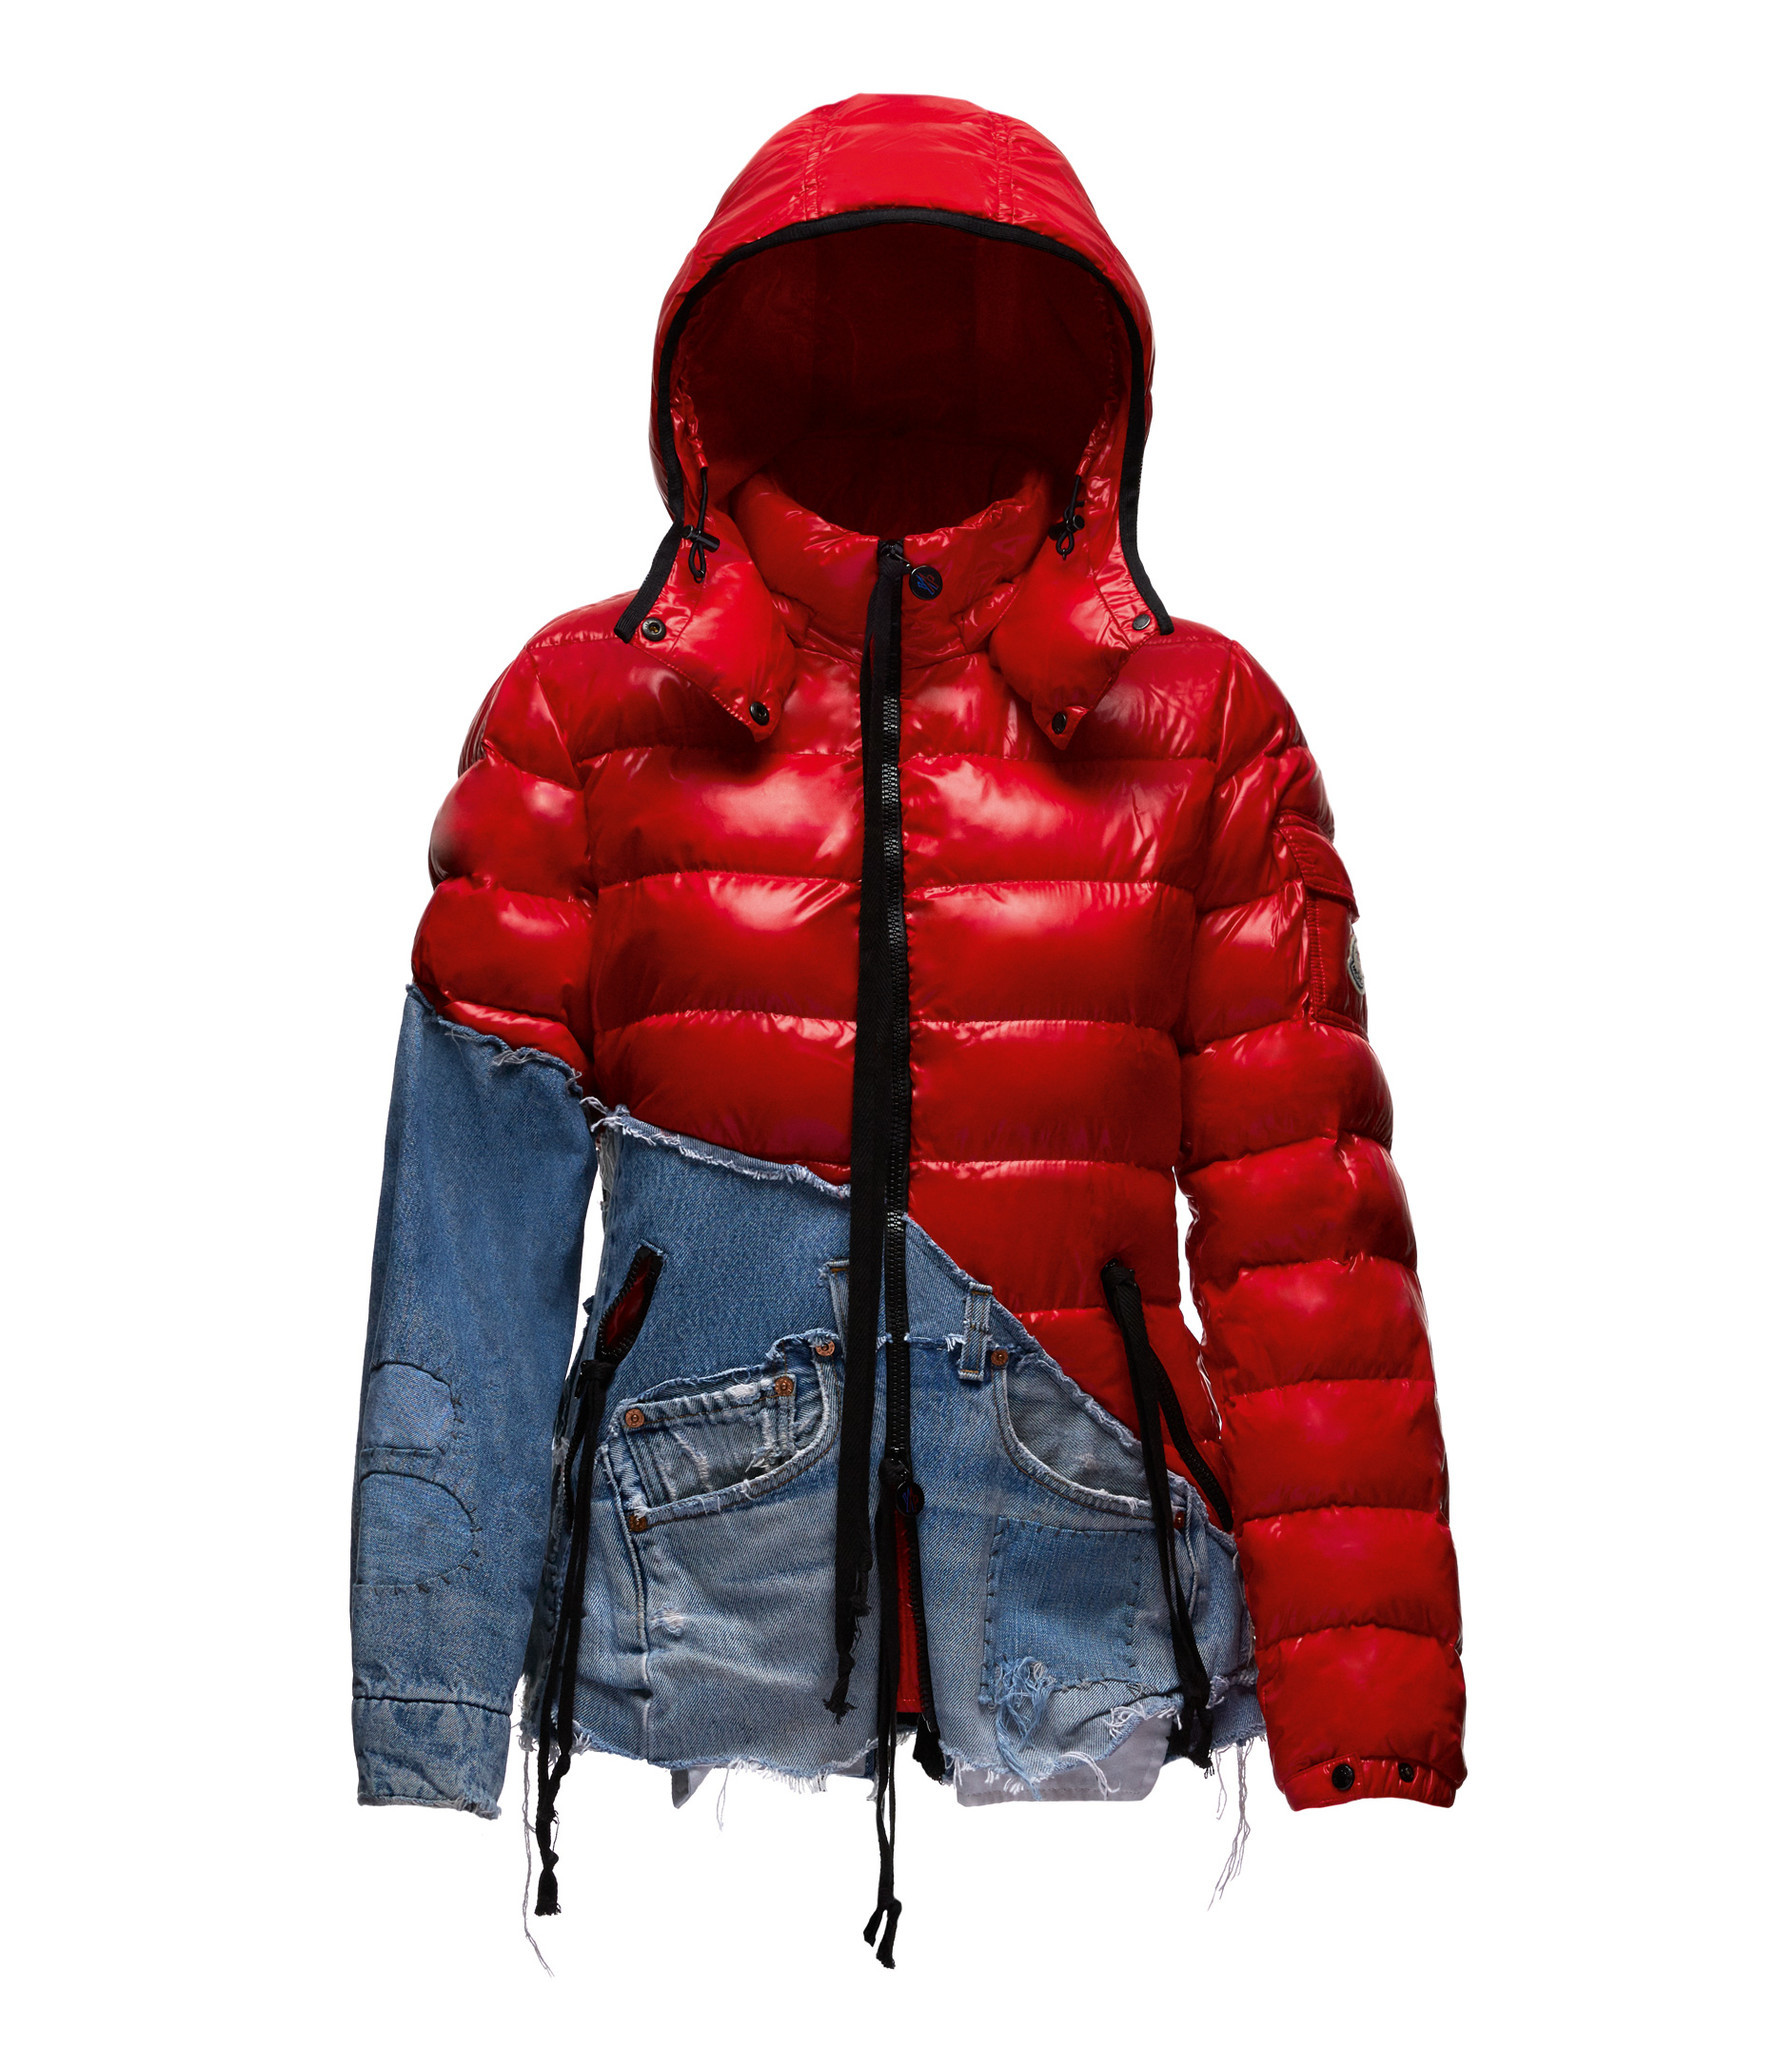 Clothes from the Greg Lauren X Moncler collection from Paris Fashion Week.